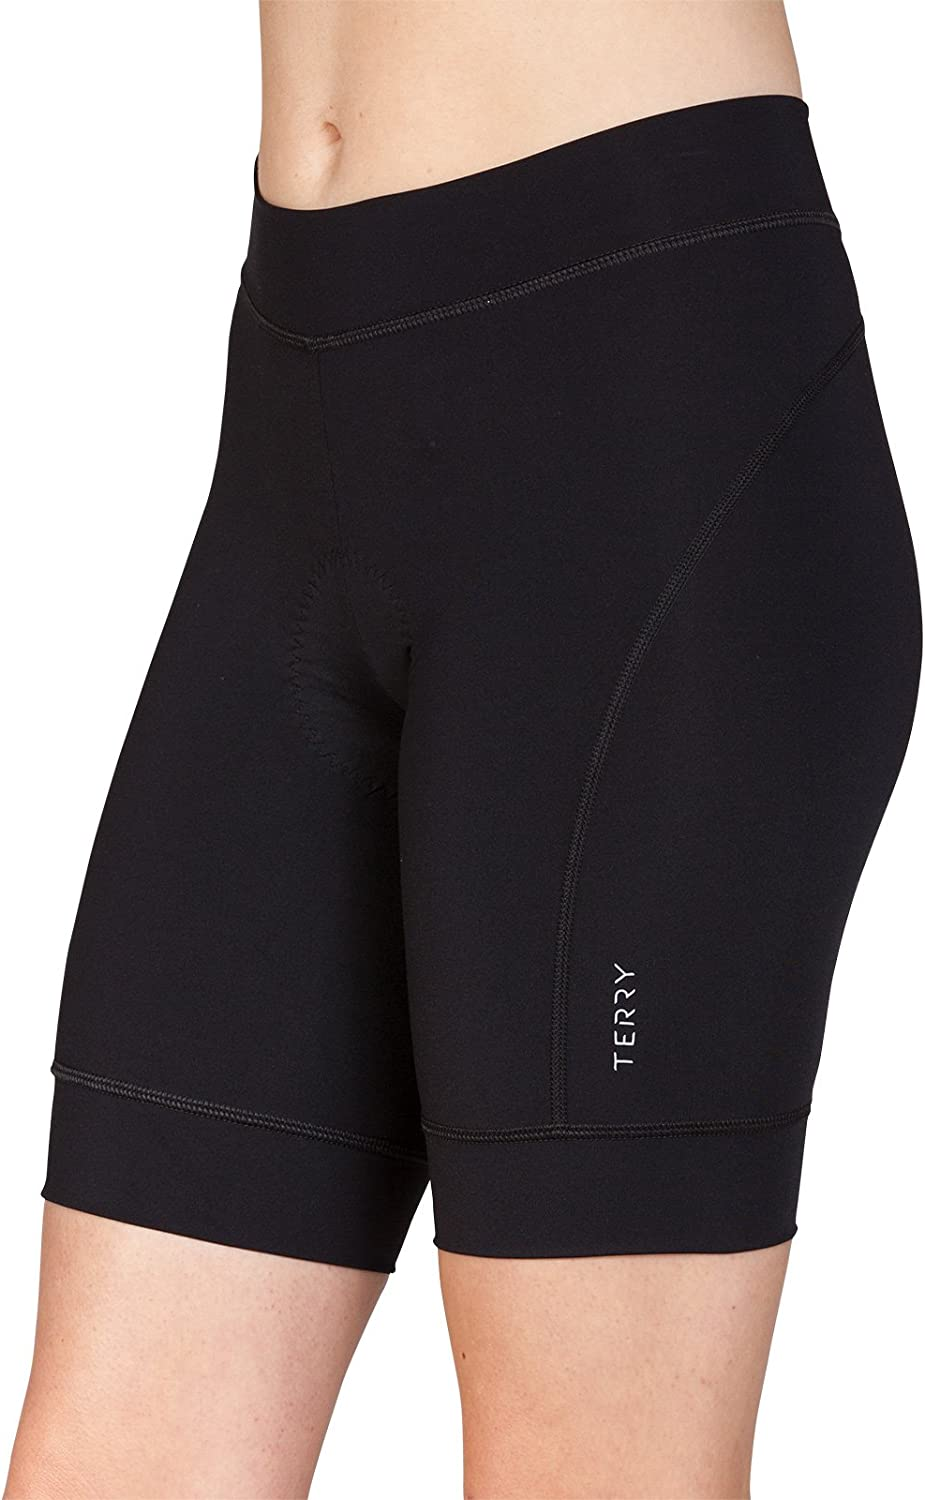 Bicycling Magazine Editor/'s Choice Terry Highly Rated Breakaway Performance Cycling Shorts for Women